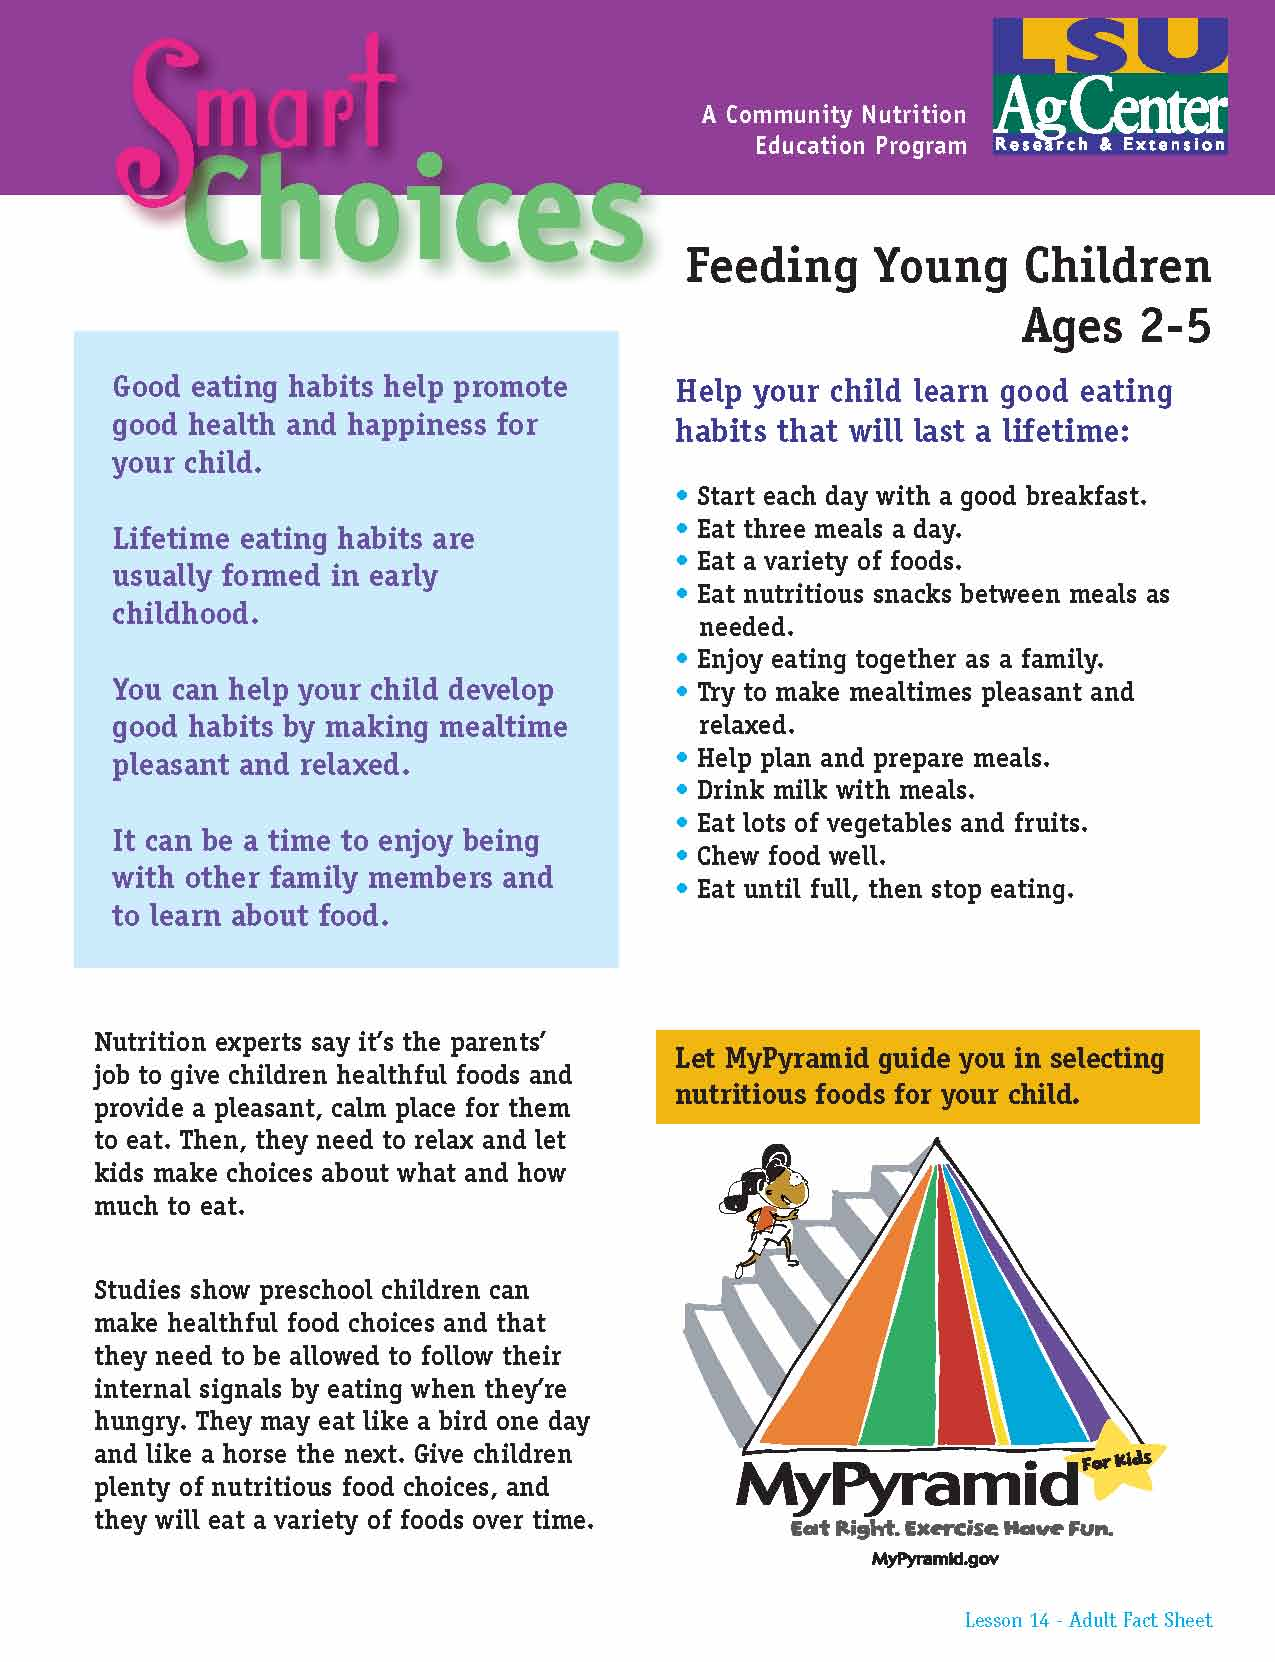 Smart Choices:  Feeding Young Children Ages 2-5